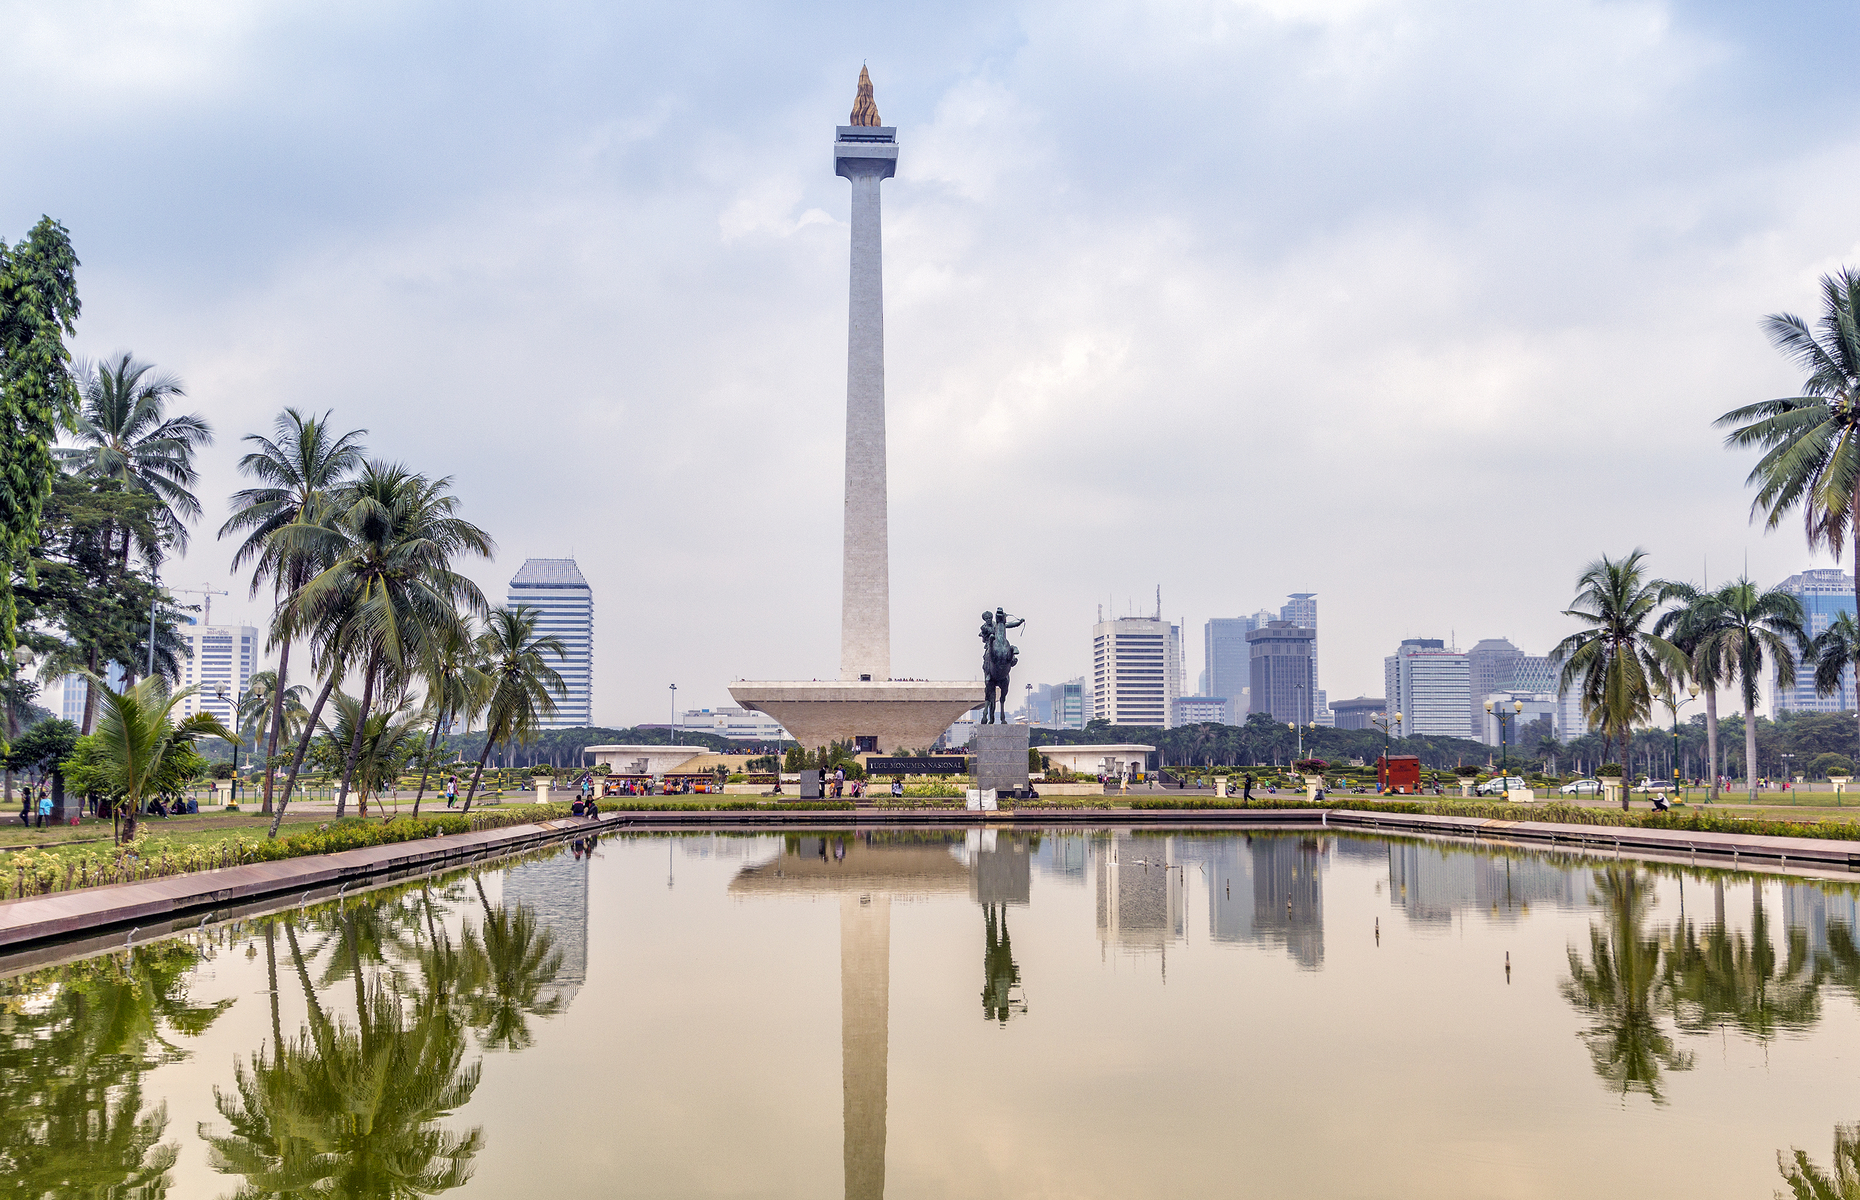 National Monument in Jakarta (Image: cpaulfell/Shutterstock)